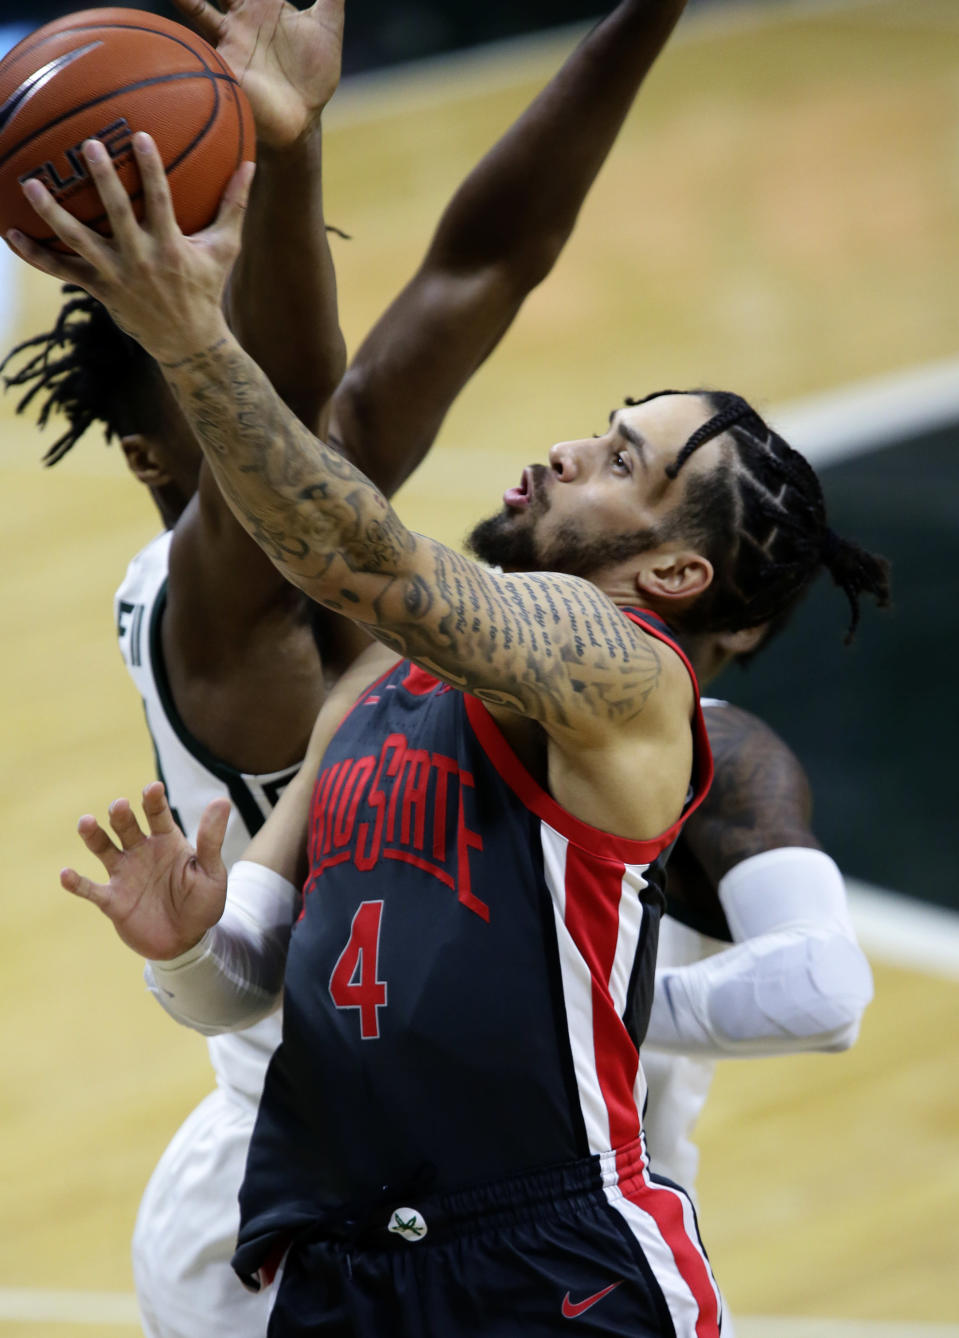 Ohio State guard Duane Washington Jr. (4) goes to the basket against Michigan State during the first half of an NCAA college basketball game Thursday, Feb. 25, 2021, in East Lansing, Mich. (AP Photo/Duane Burleson)